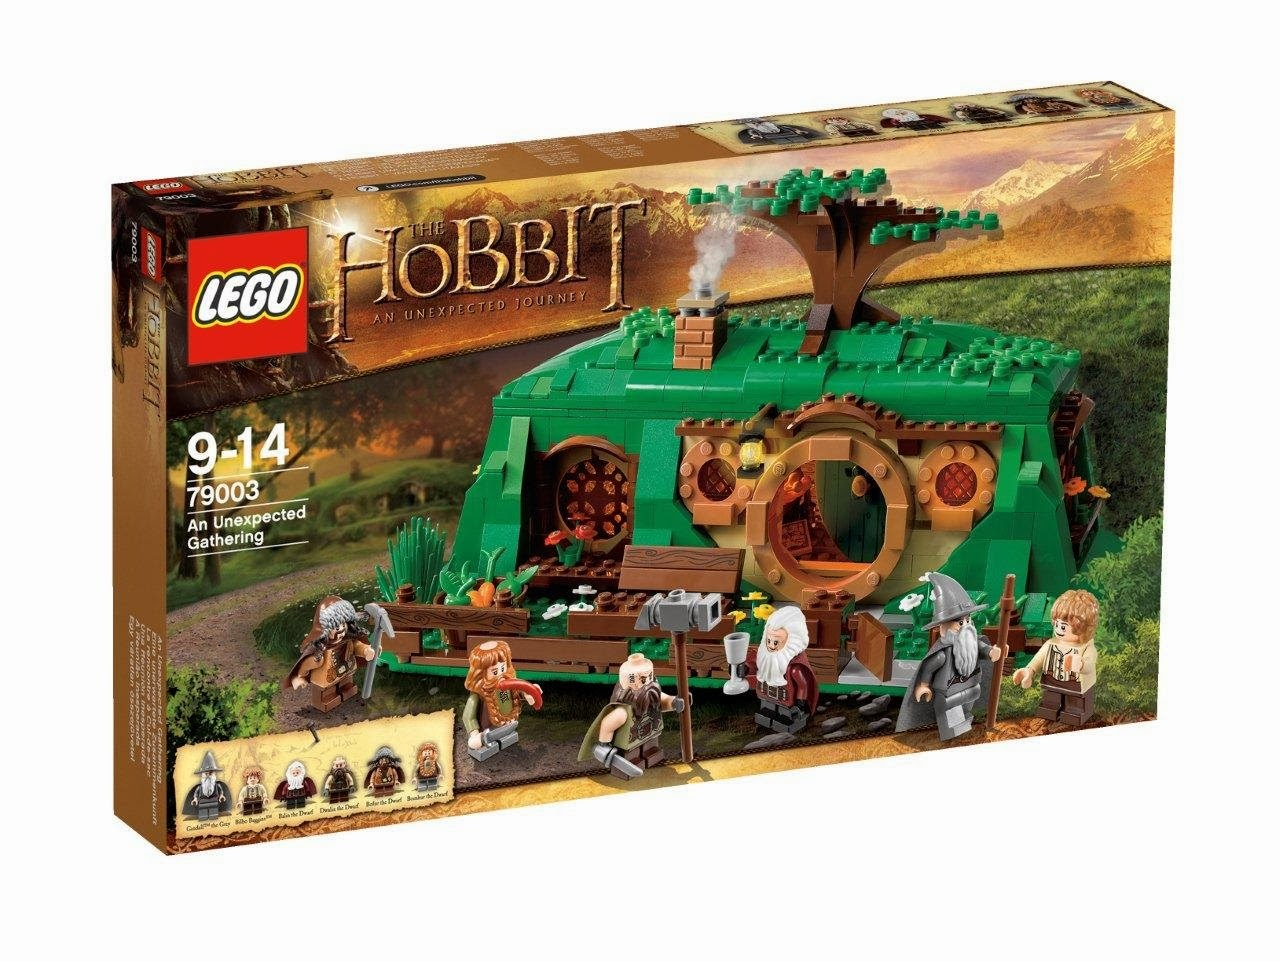 http://shop.lego.com/en-US/An-Unexpected-Gathering-79003?fromListing=listing